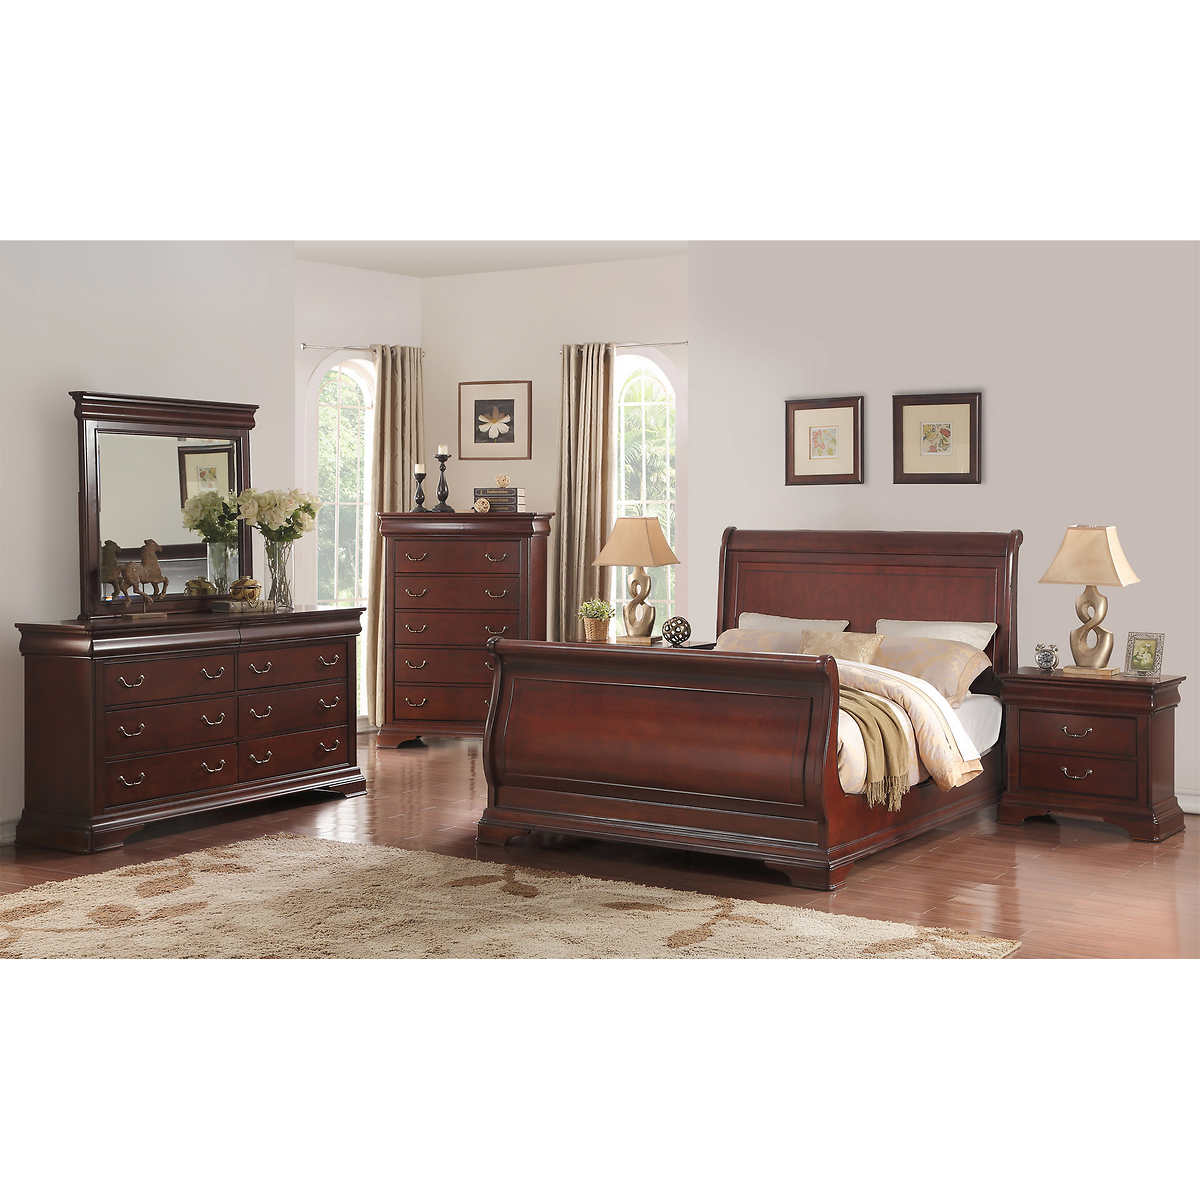 cal king bedroom sets  costco - madeline piece cal king bedroom set